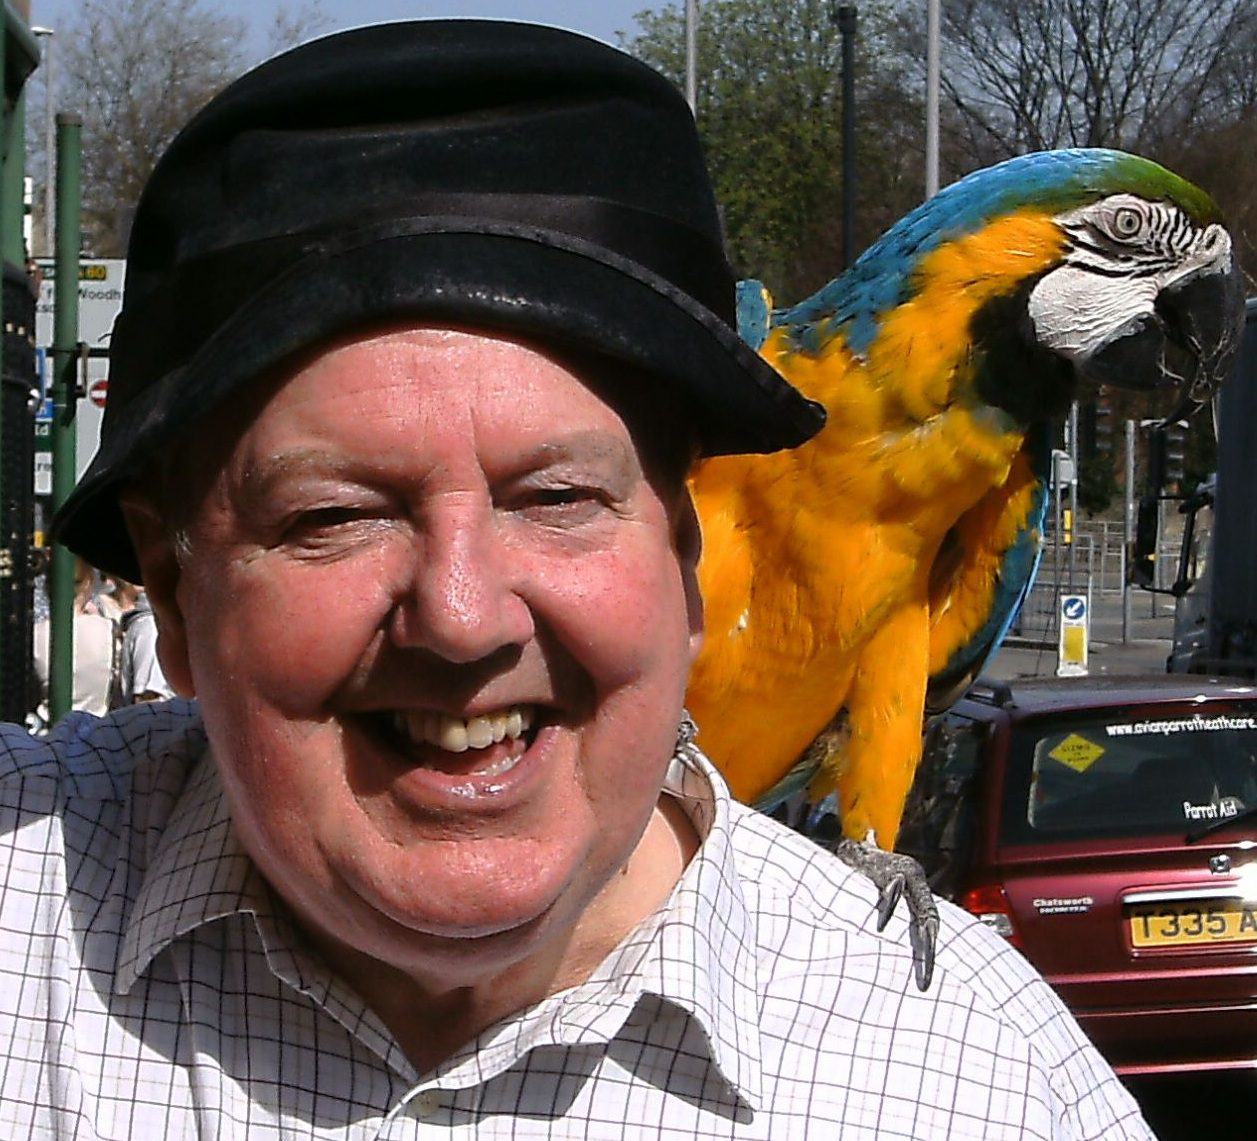 Jimmy Cricket with the parrot